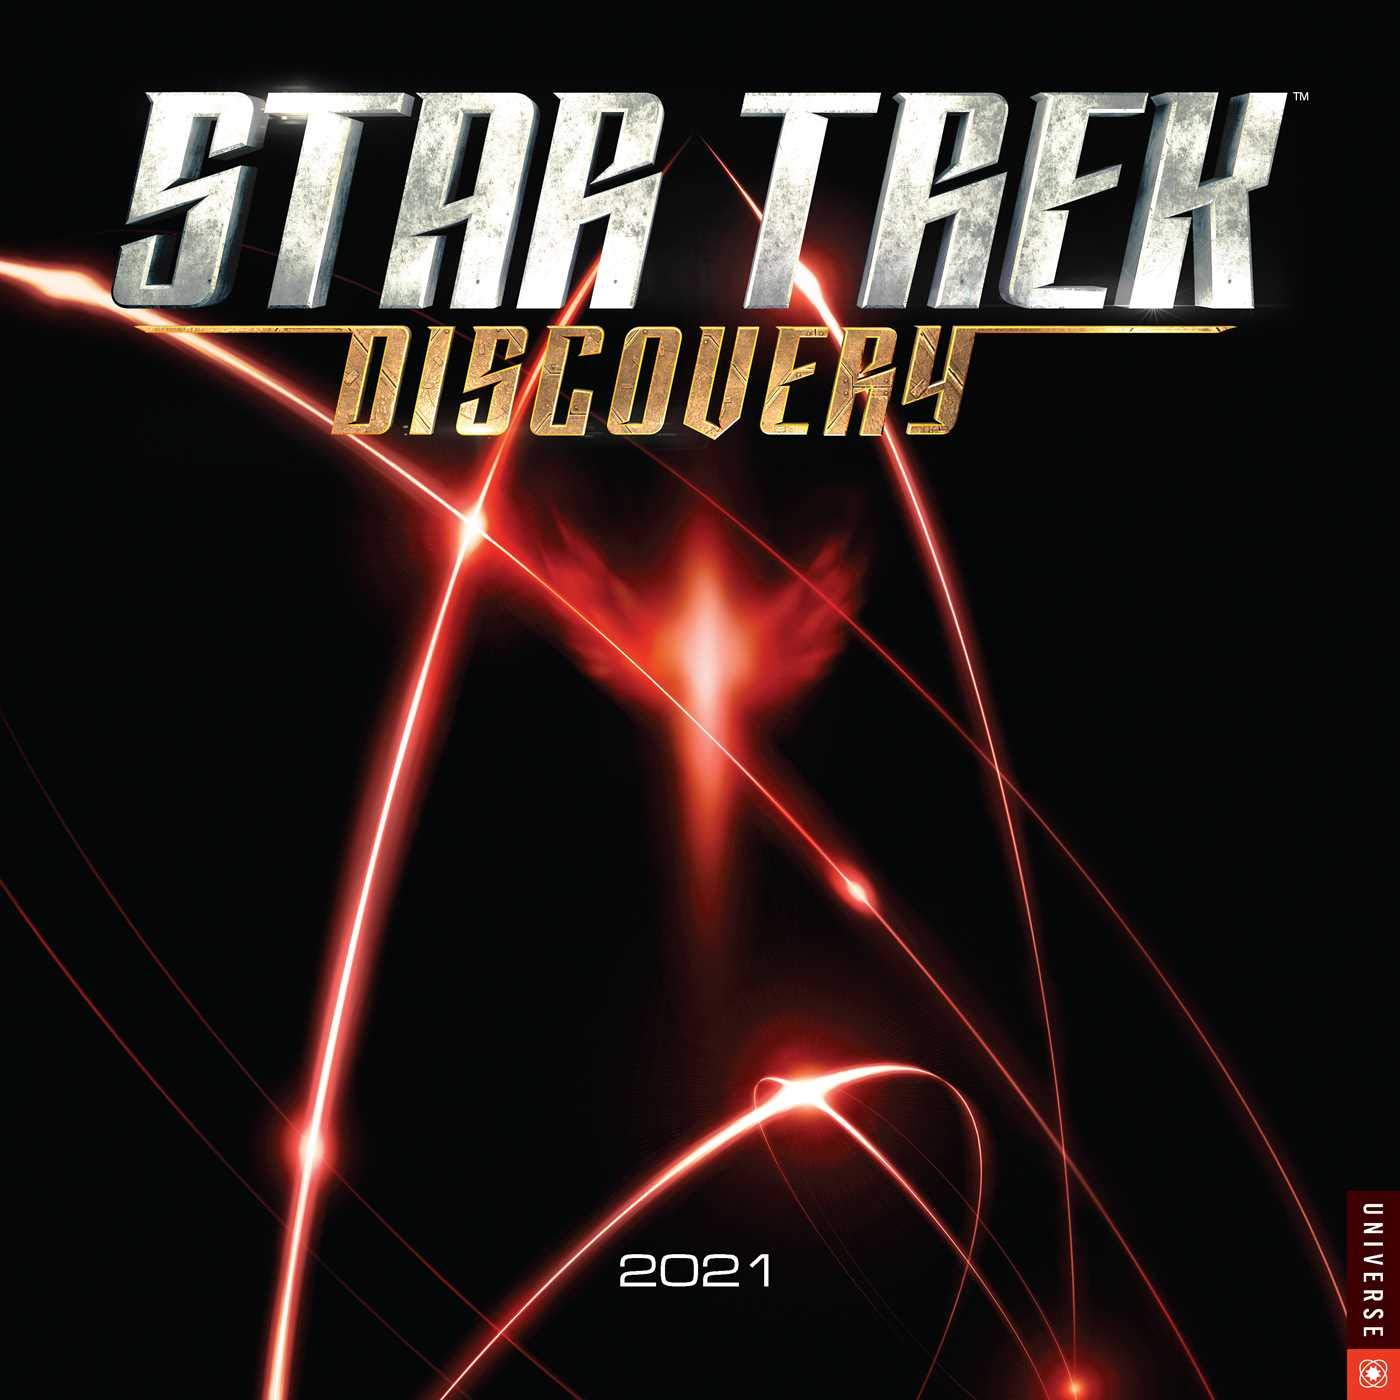 Discover Card Rewards Calendar 2021 Amazon.com: Star Trek Discovery 2021 Wall Calendar (0676728038832